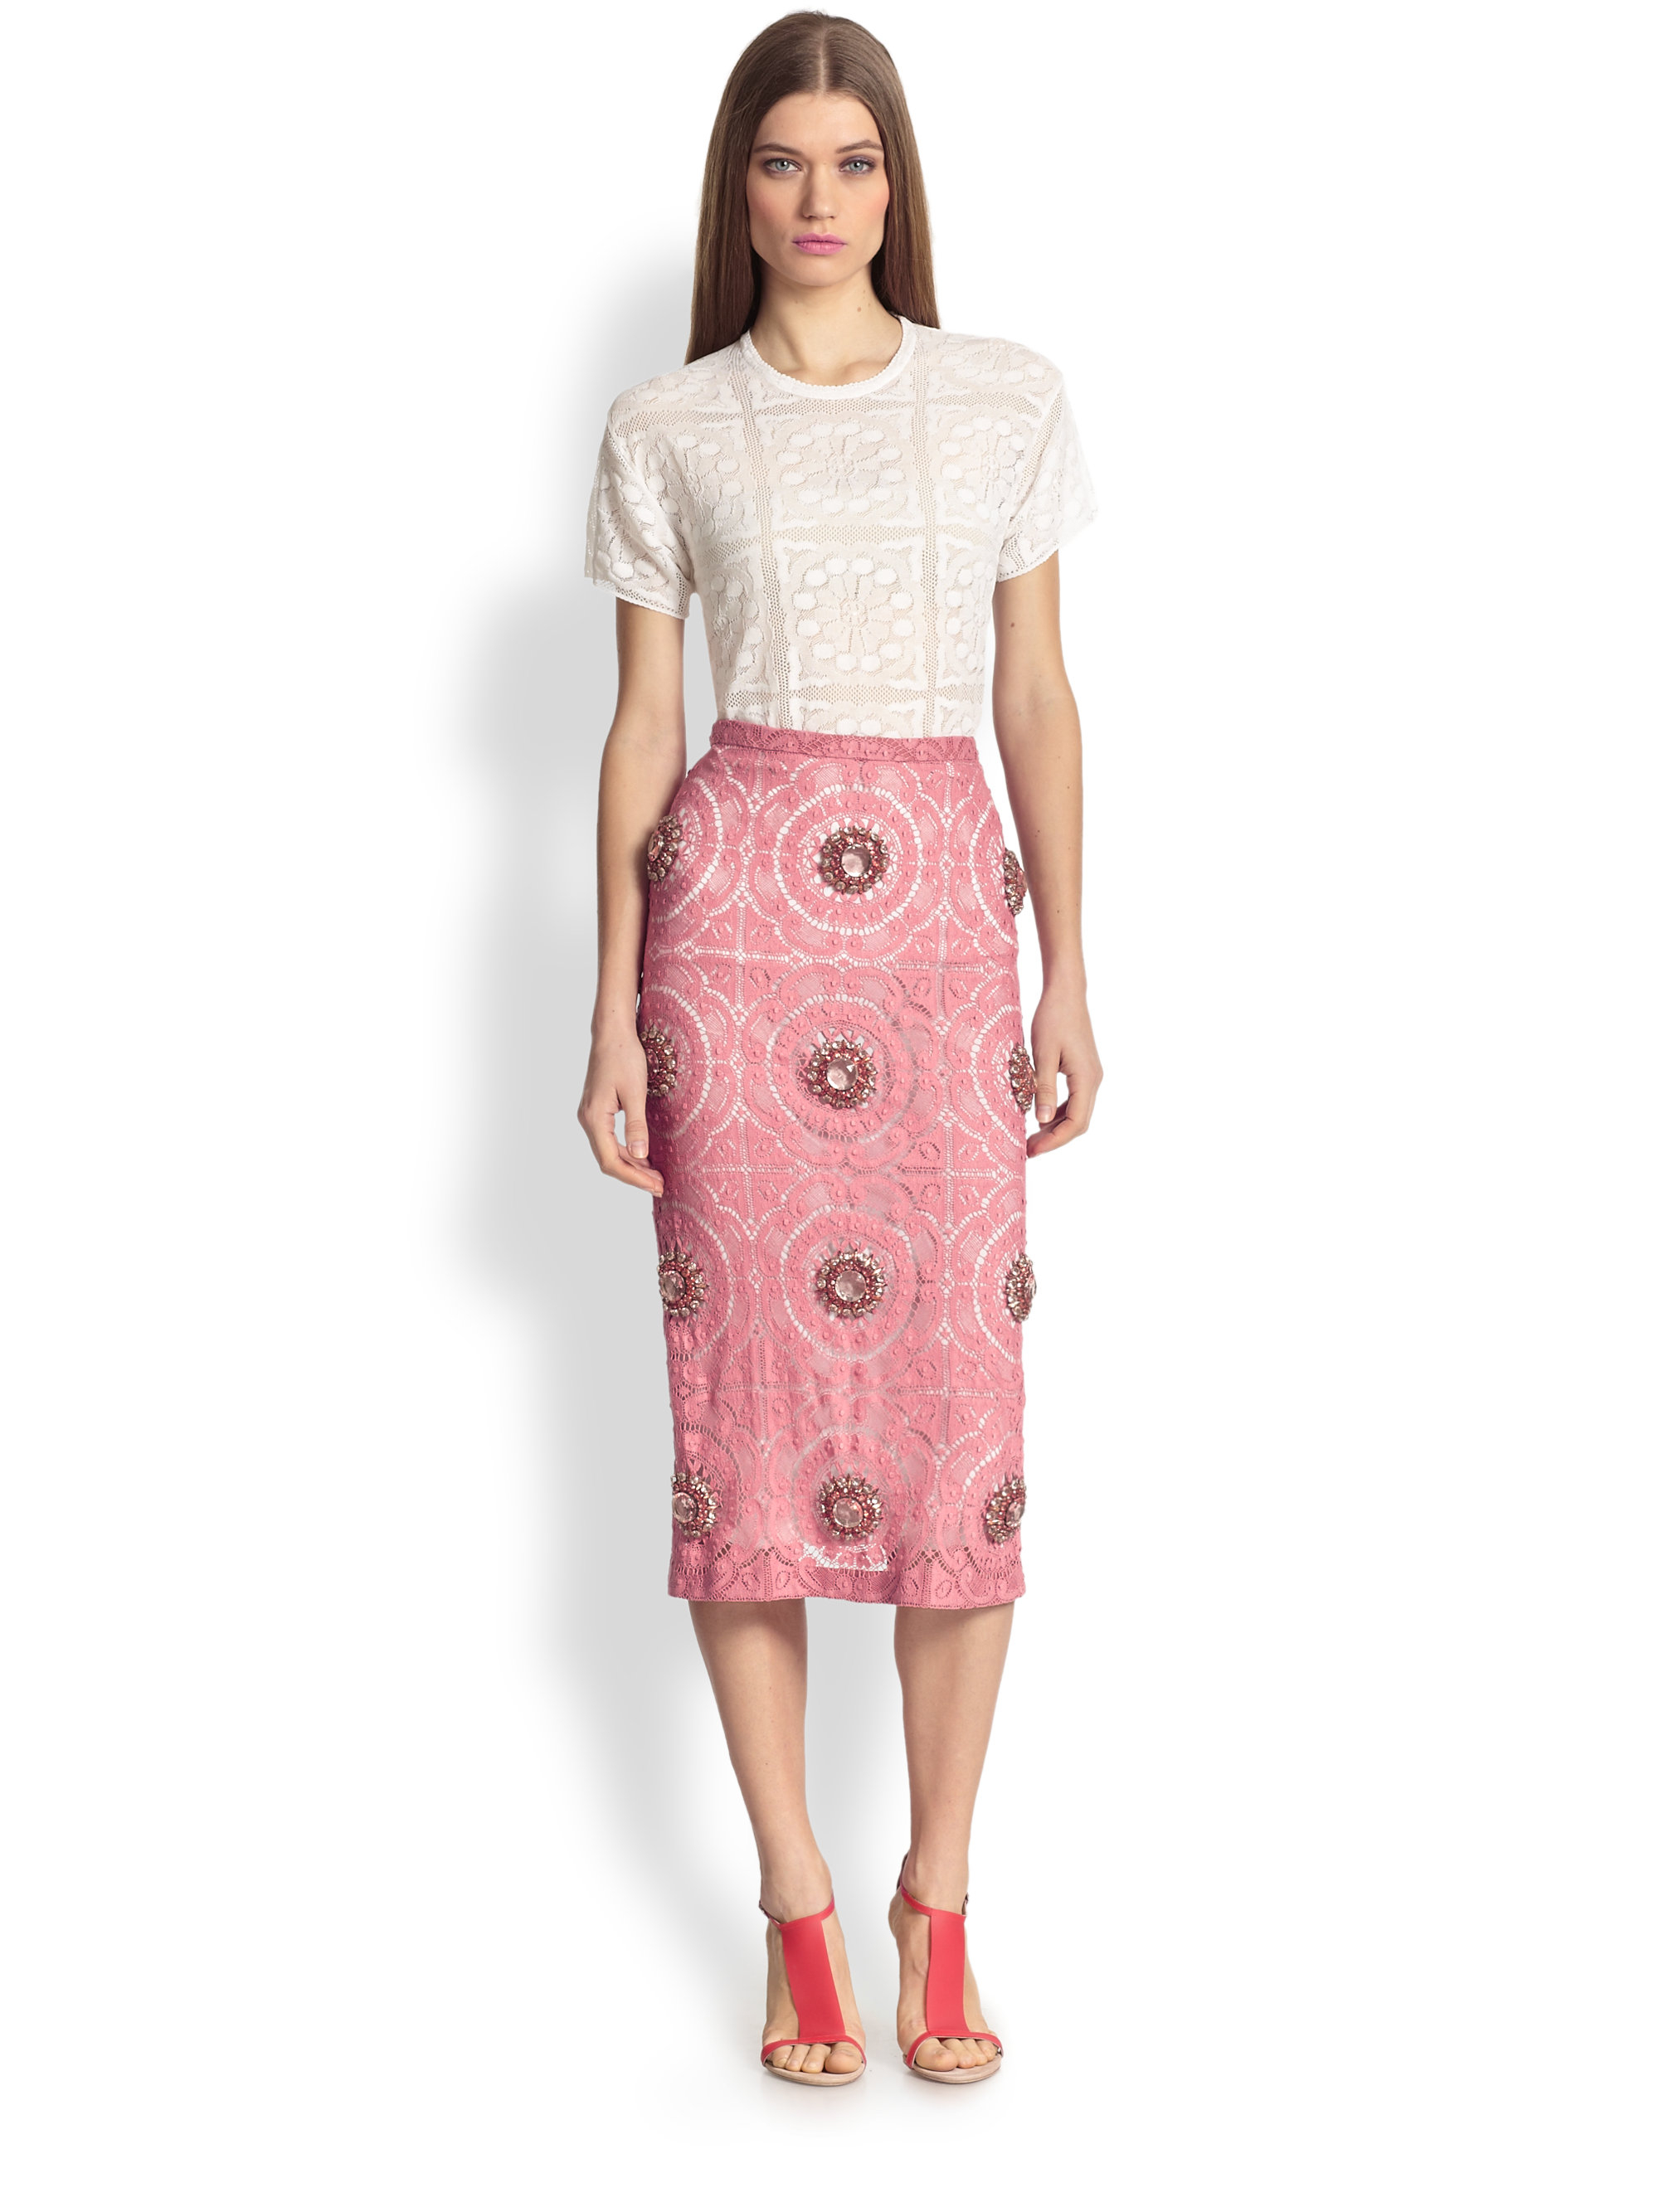 Lyst - Burberry Prorsum Embellished Lace Pencil Skirt in Pink